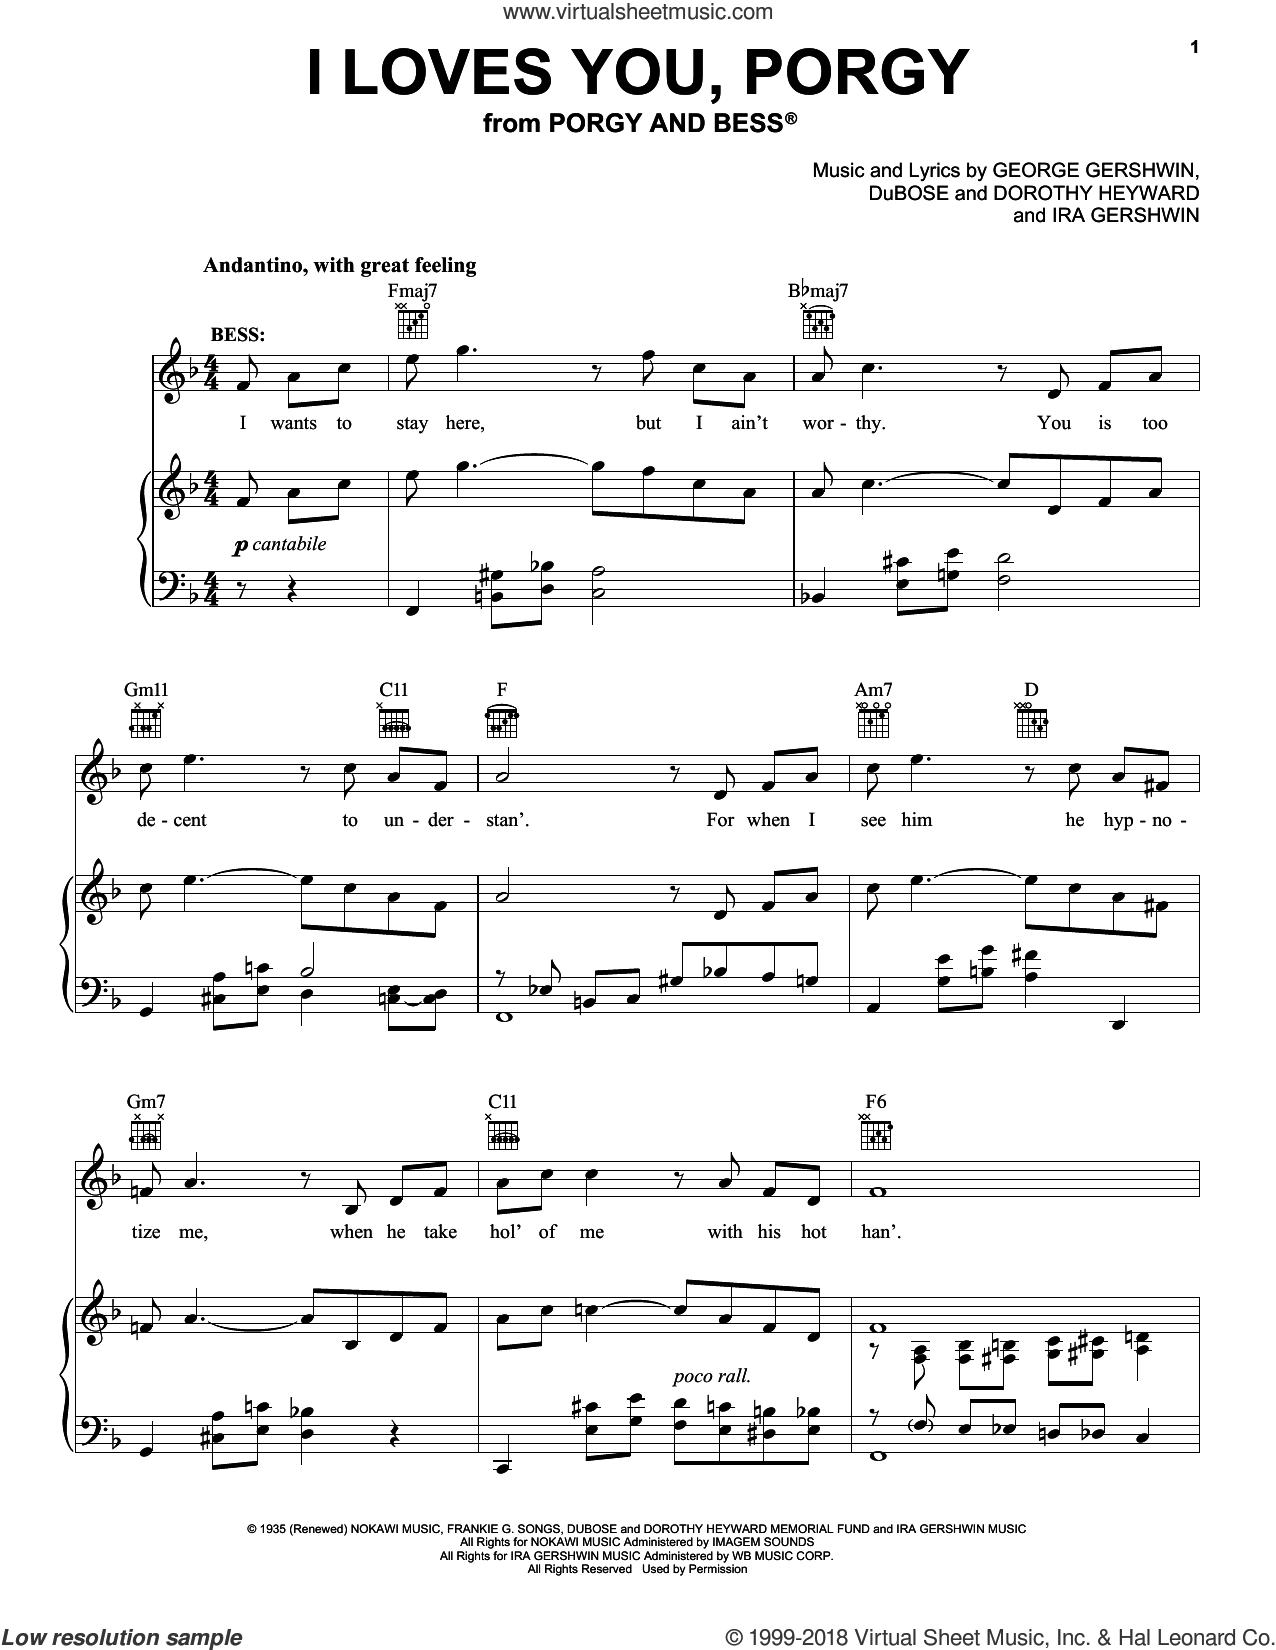 I Loves You, Porgy sheet music for voice, piano or guitar by DuBose Heyward, George and Ira Gershwin, Dorothy Heyward, George Gershwin and Ira Gershwin. Score Image Preview.